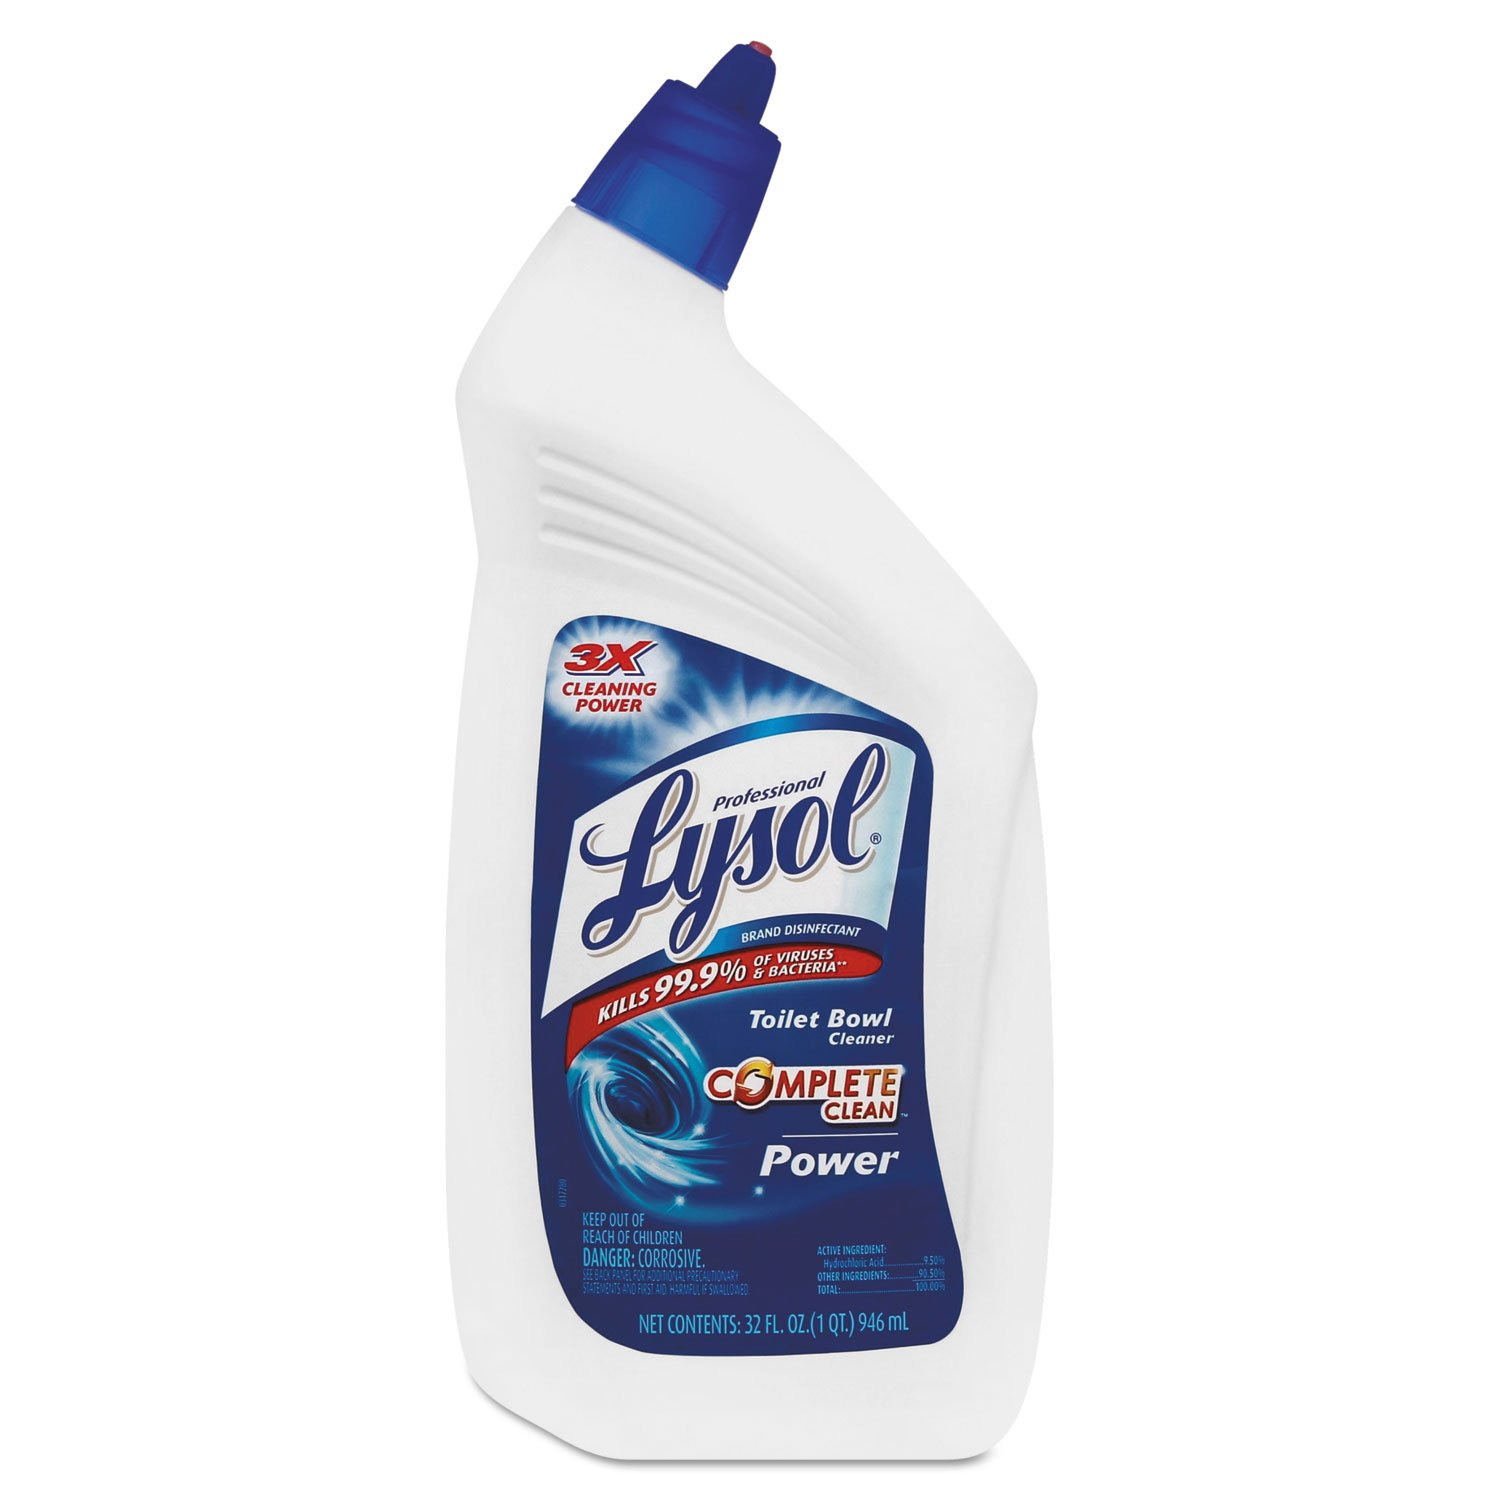 RAC74278CT - Professional Lysol Toilet Bowl Cleaner